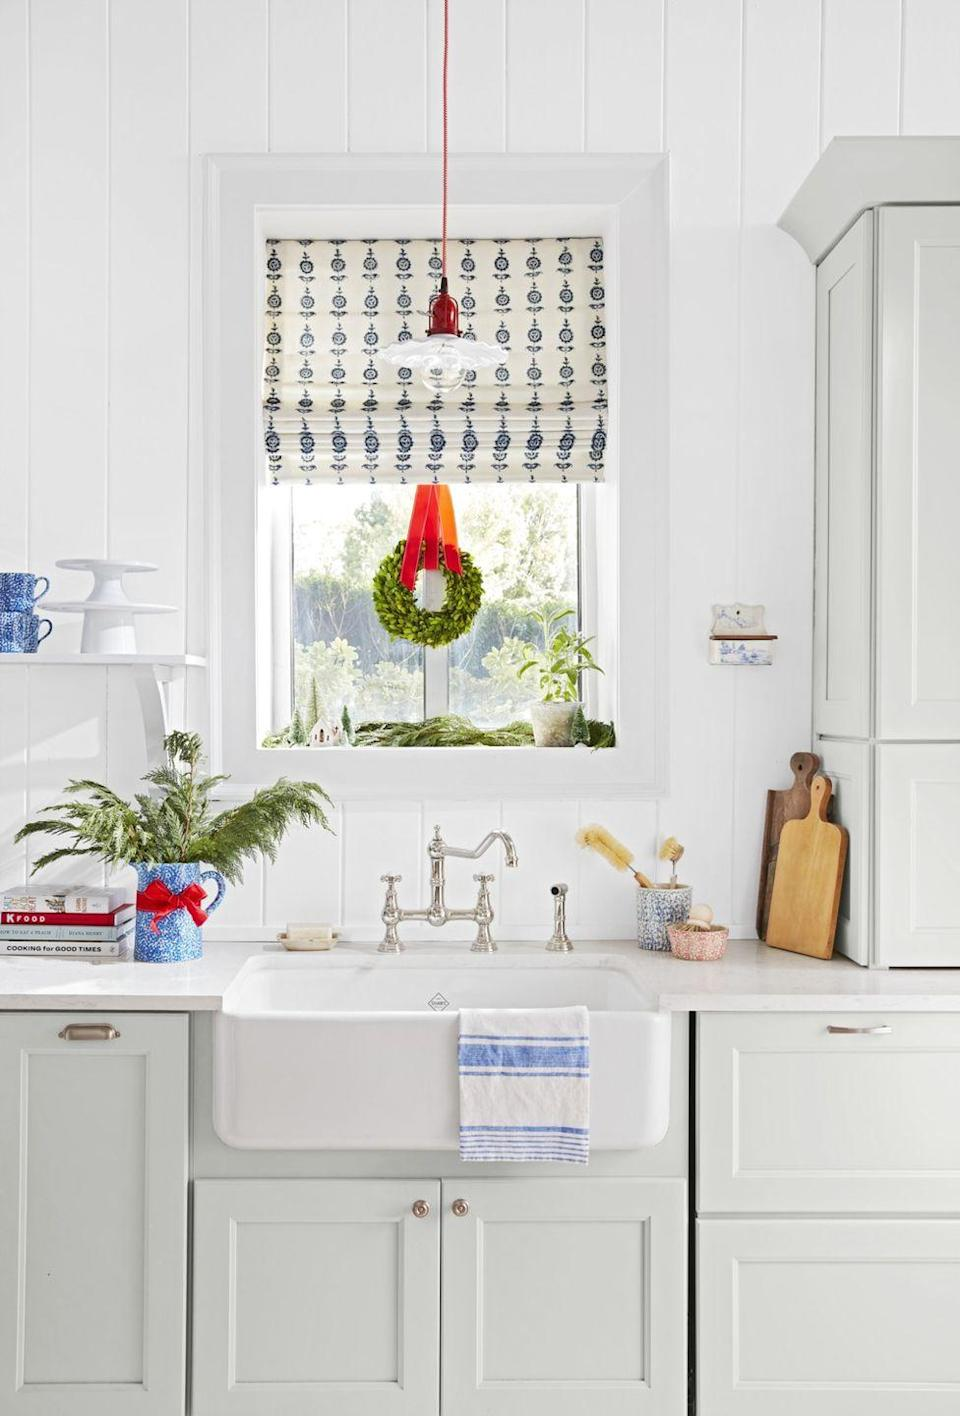 <p>You want to add some Christmas cheer to your kitchen, but you also don't want it to get in your way. A small wreath hanging from the window does the trick—and will remind you of the holiday season while you're washing dishes!</p>